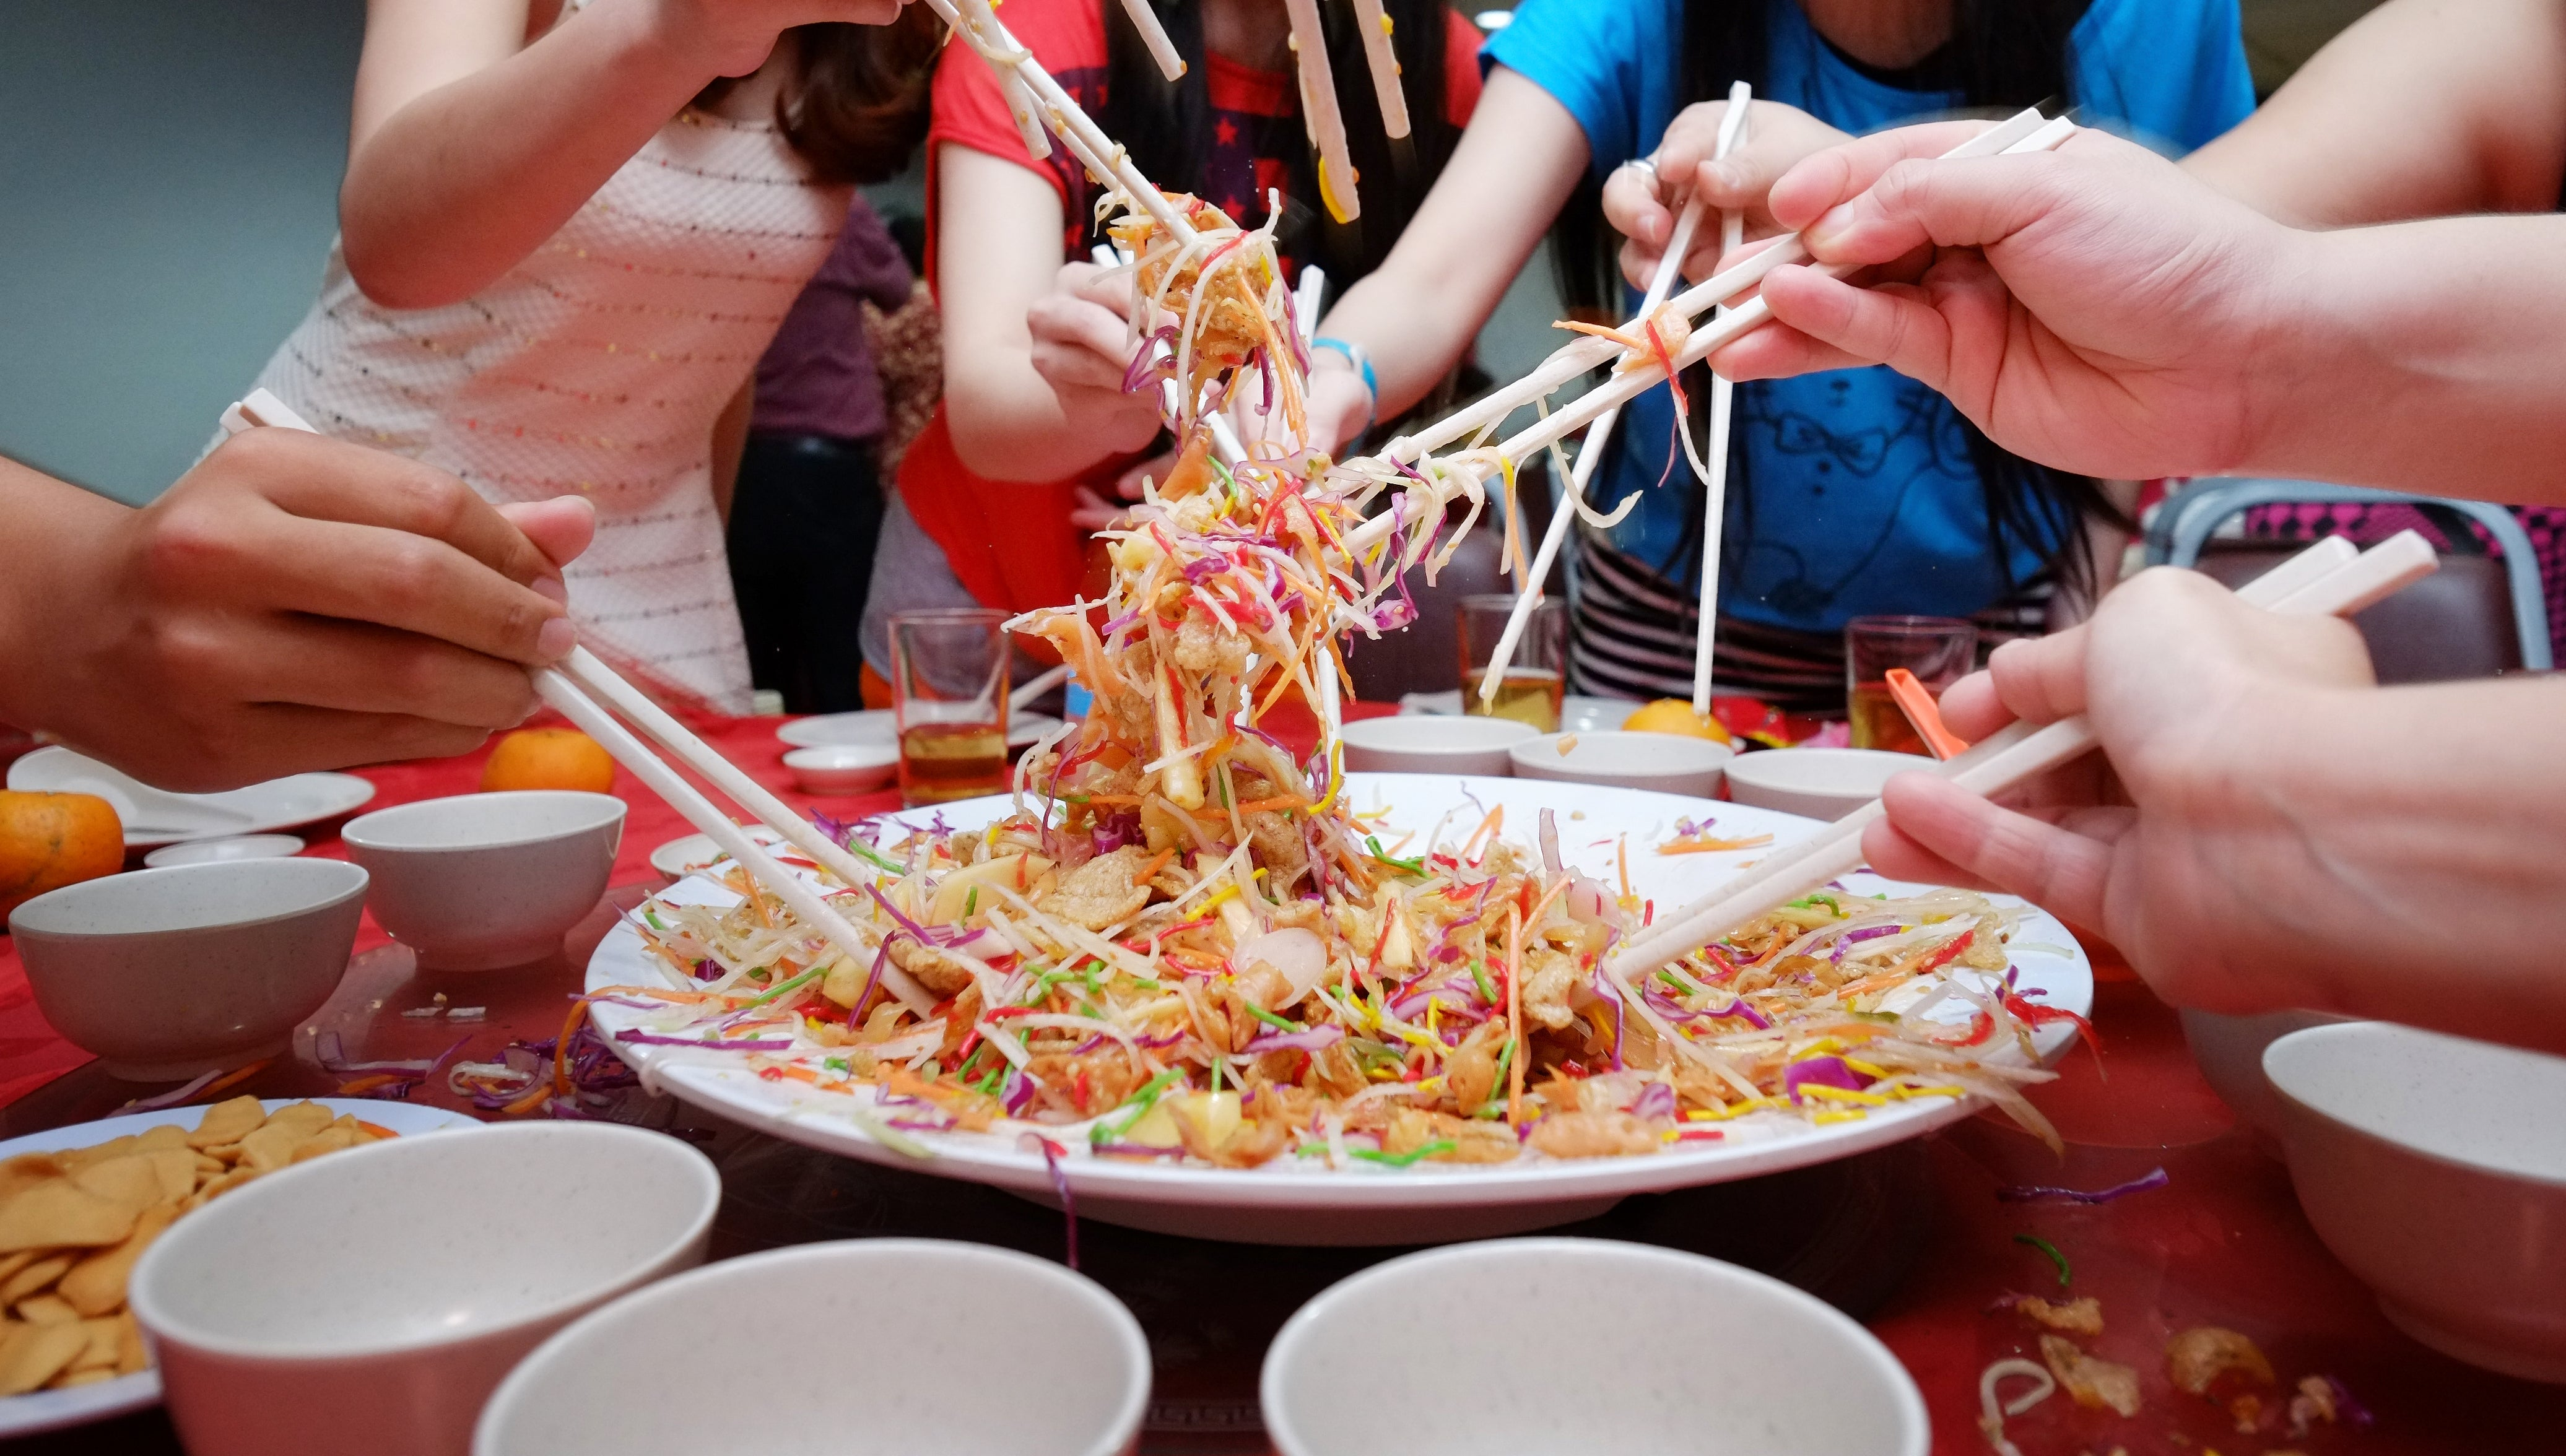 5 Halal Yu Sheng To Toss For Good Luck In Singapore | CNY Specials